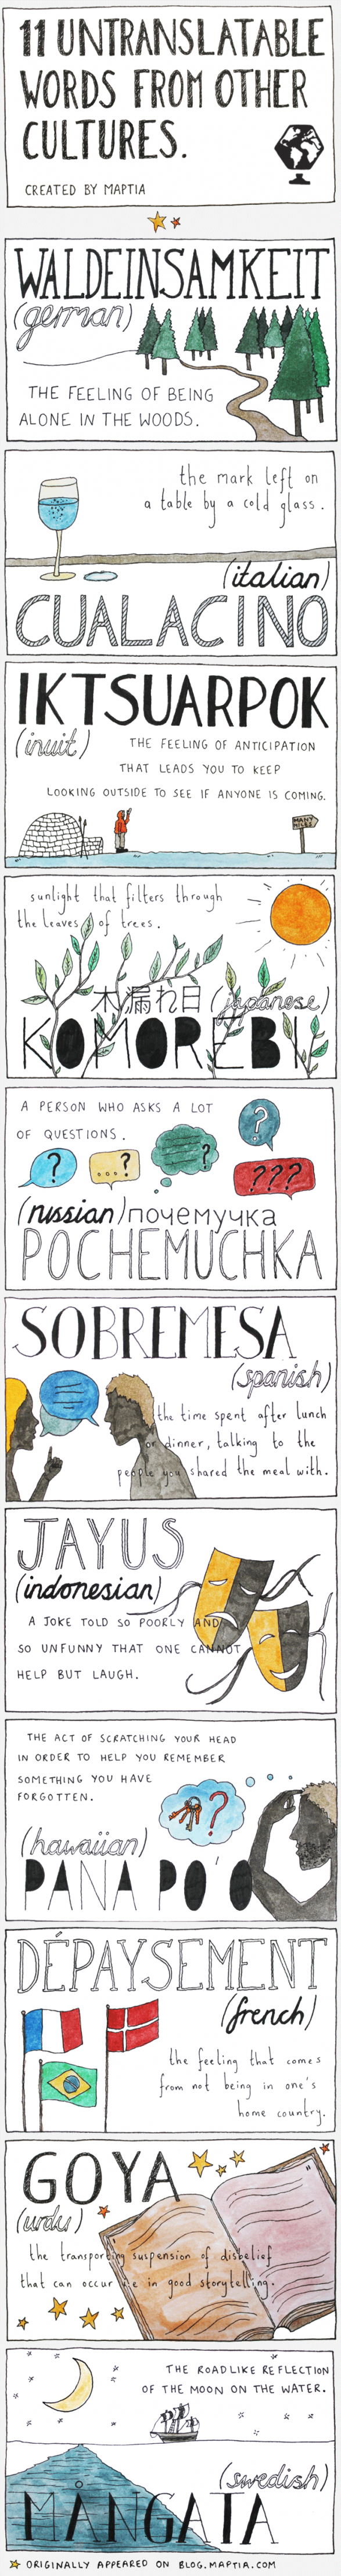 11 untranslatable words from other cultures 52152bbe65e85 w587 11 Untranslatable Words From Various Languages